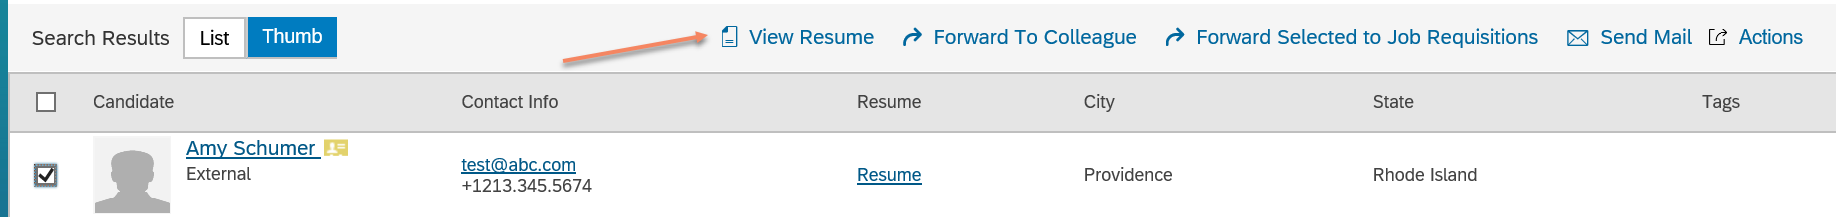 From Candidate search.png